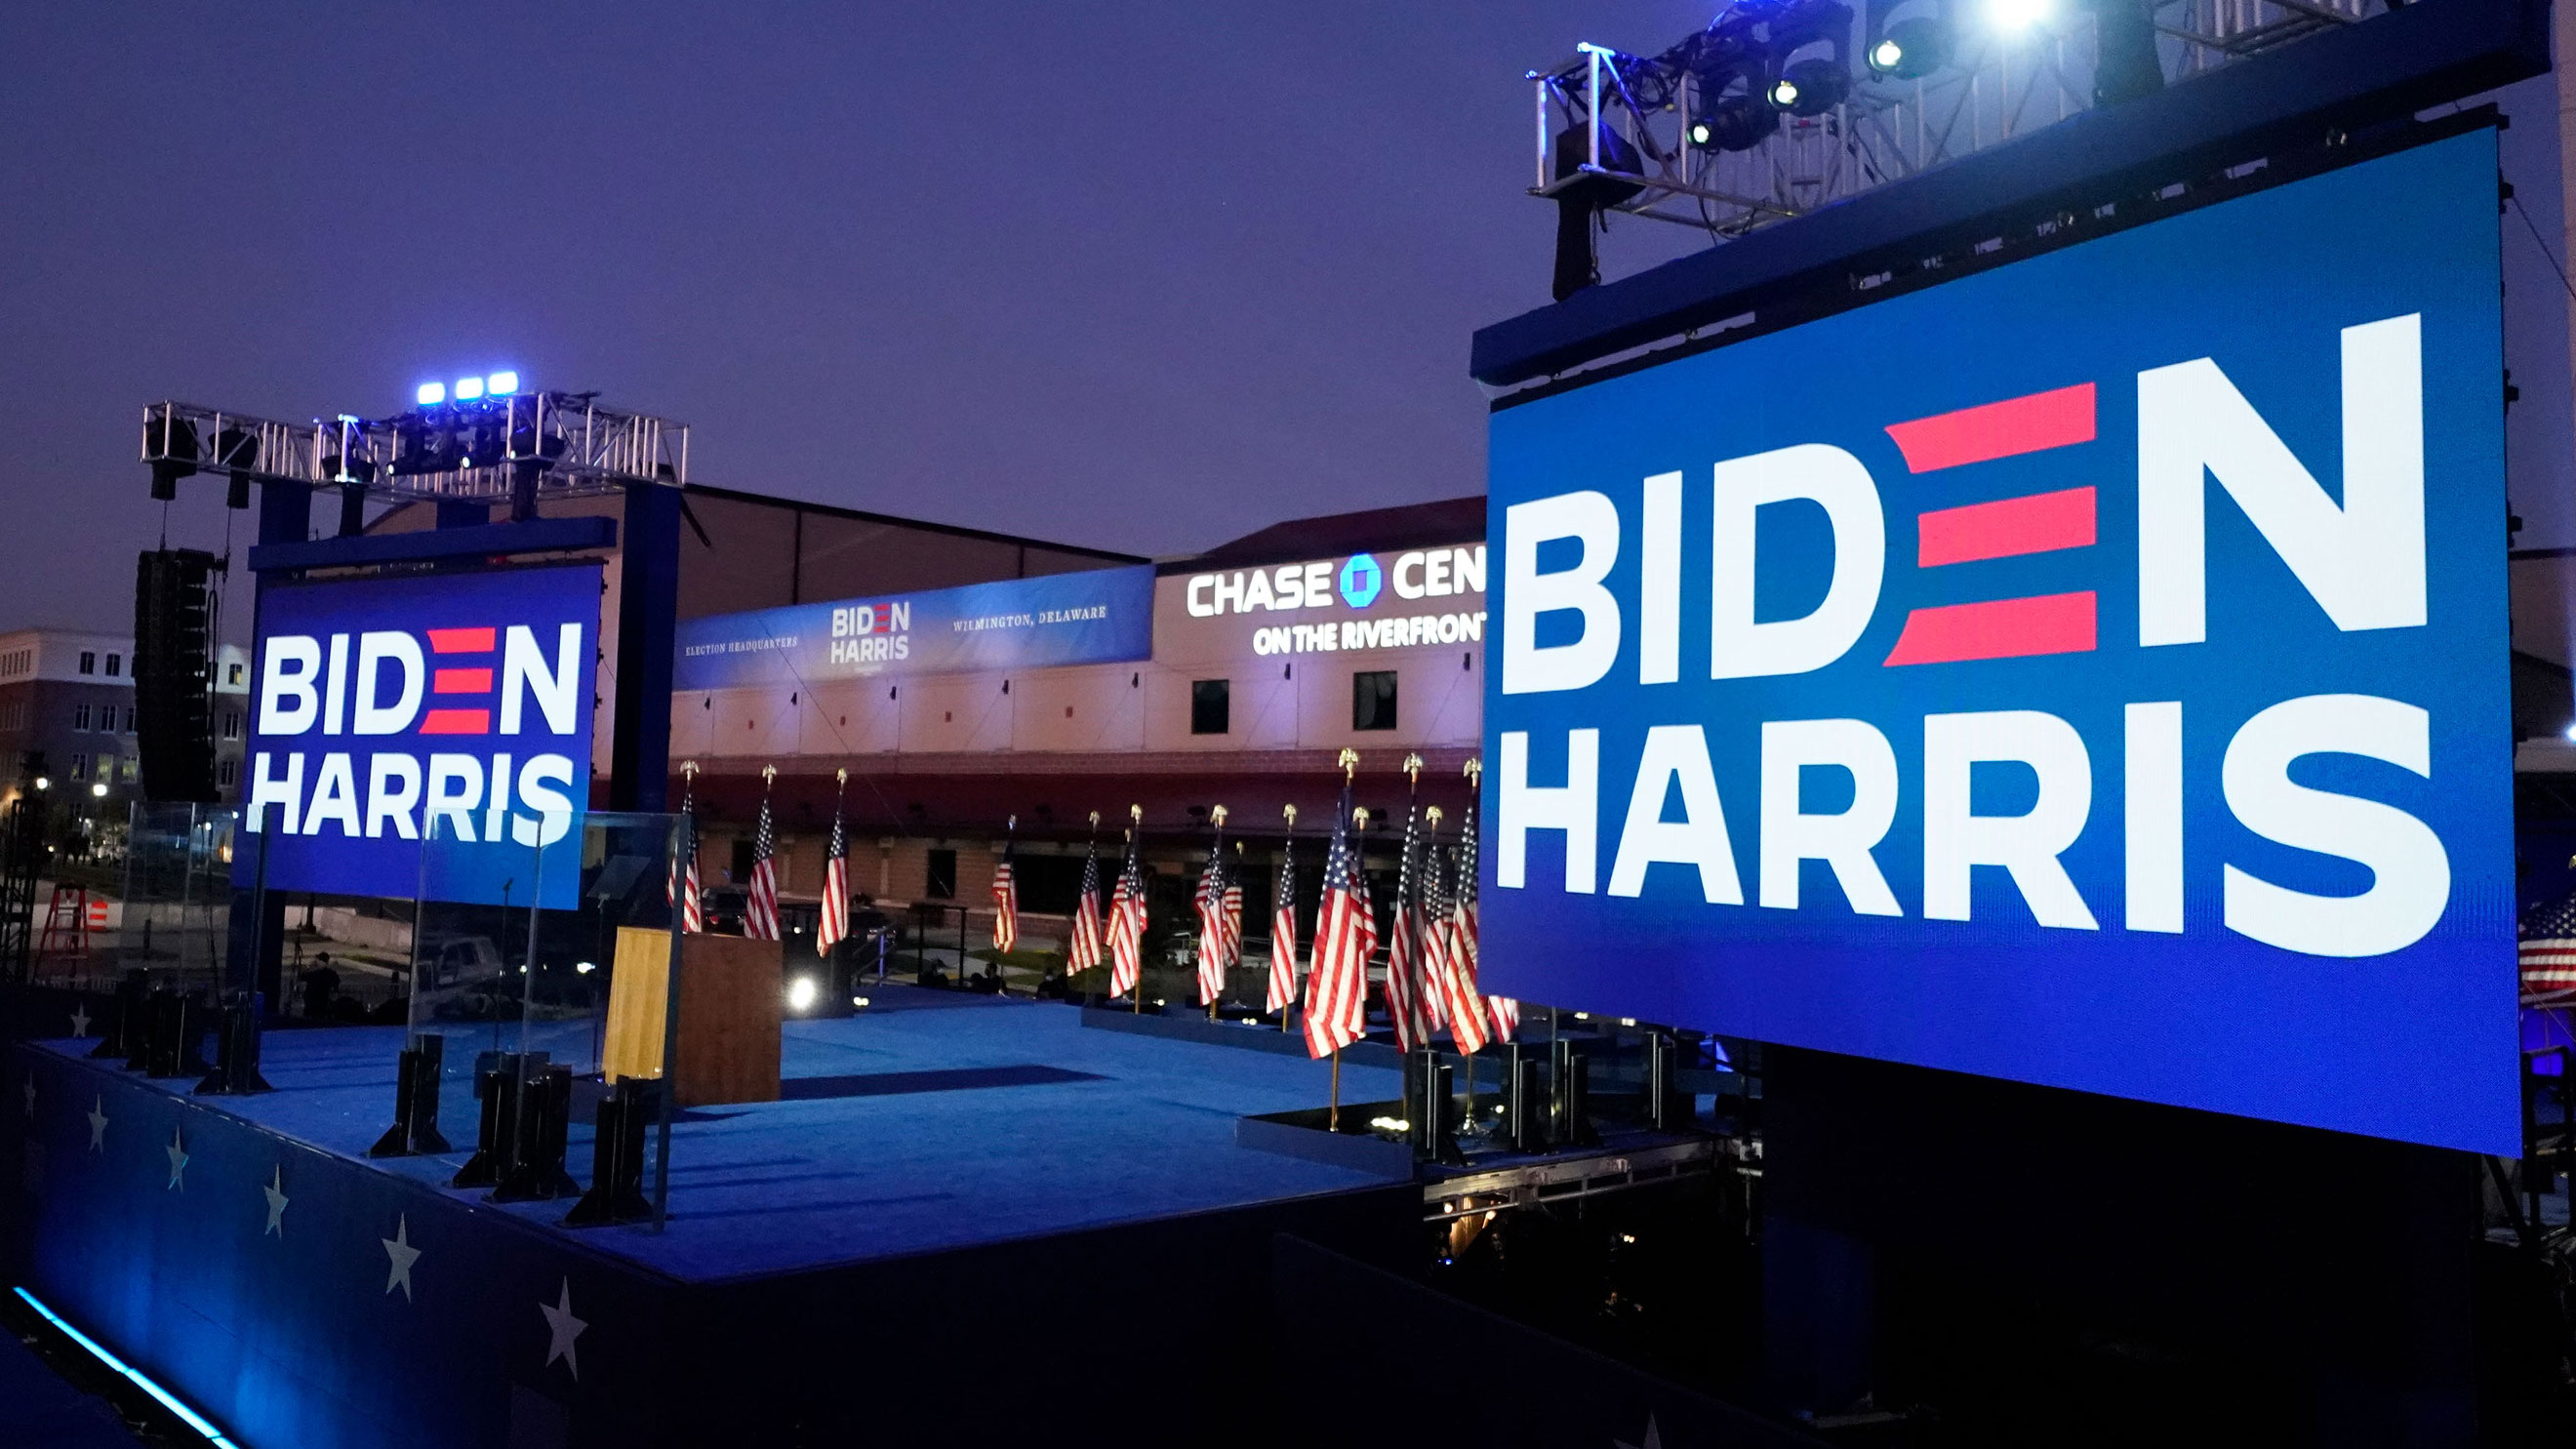 The stage is set for President-elect Joe Biden to speak on November 7 in Wilmington, Delaware